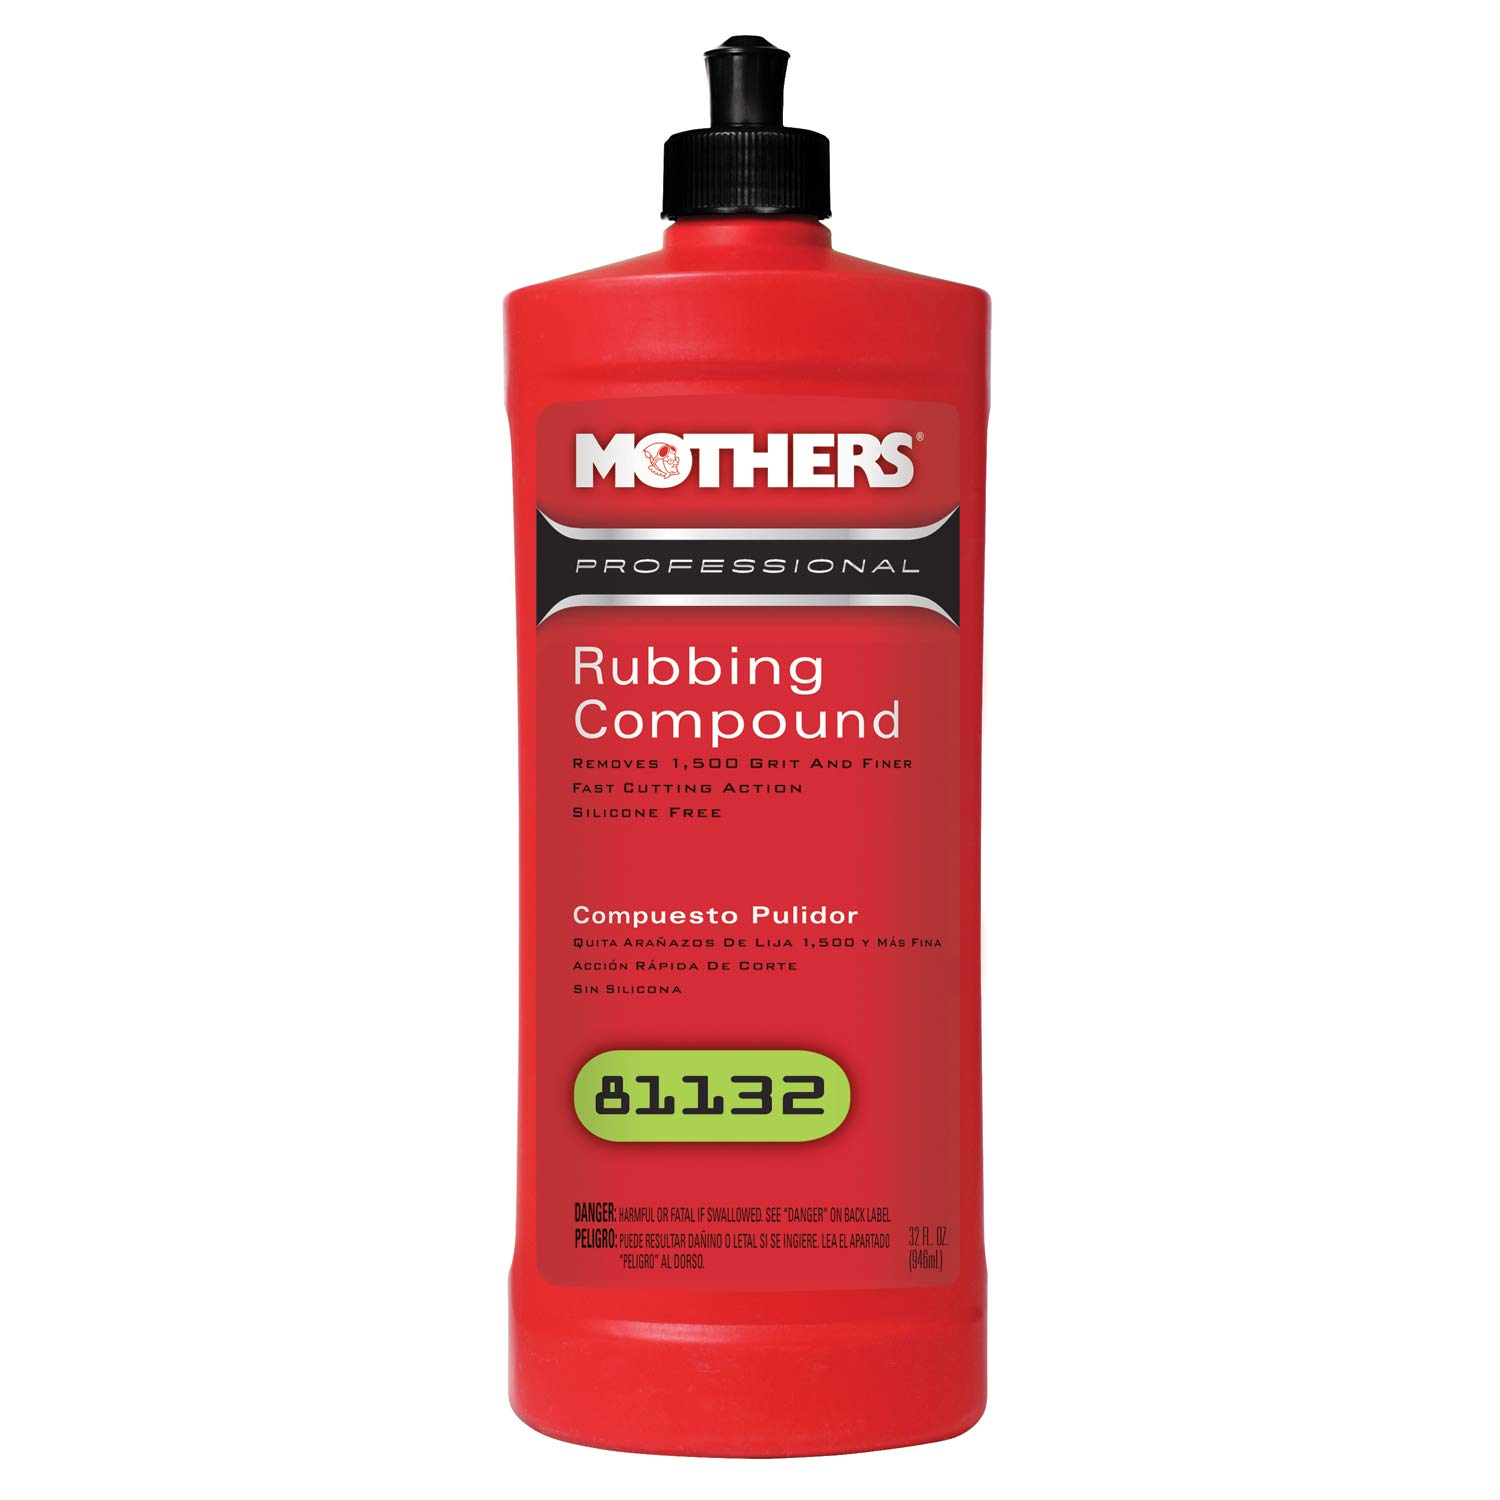 Mothers 81132 Professional Rubbing Compound - 32 oz.